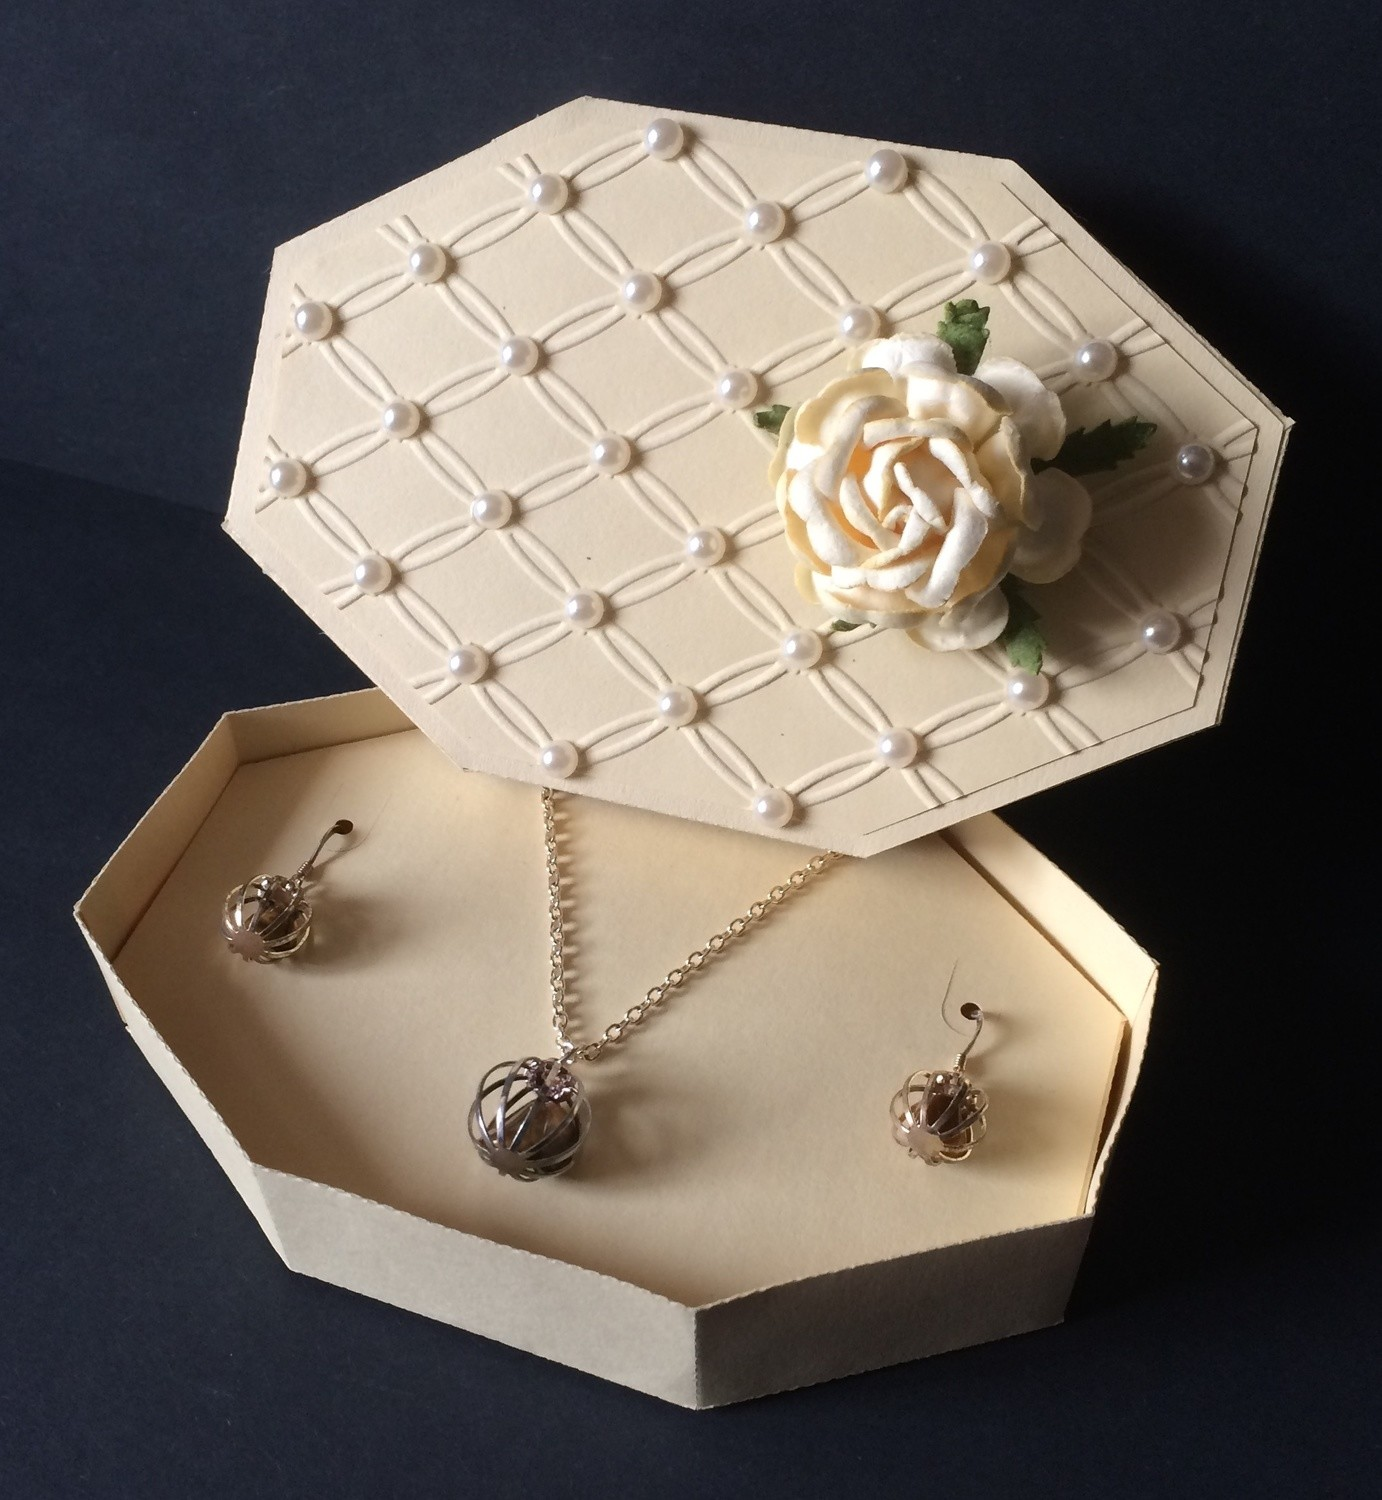 Large Jewellery Box with insert for Ear-rings and Necklace Mum mother